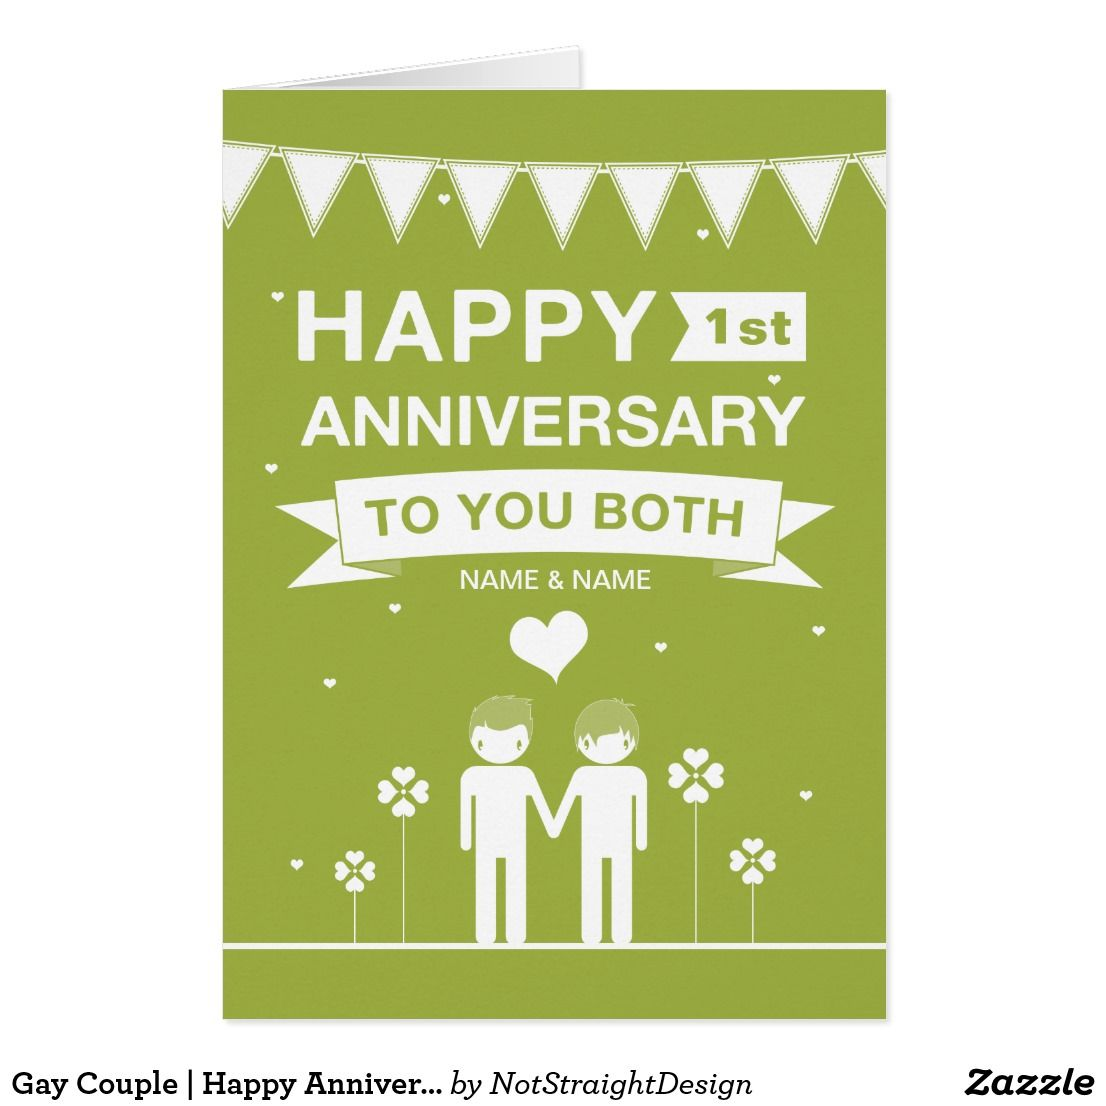 You searched for: gay anniversary